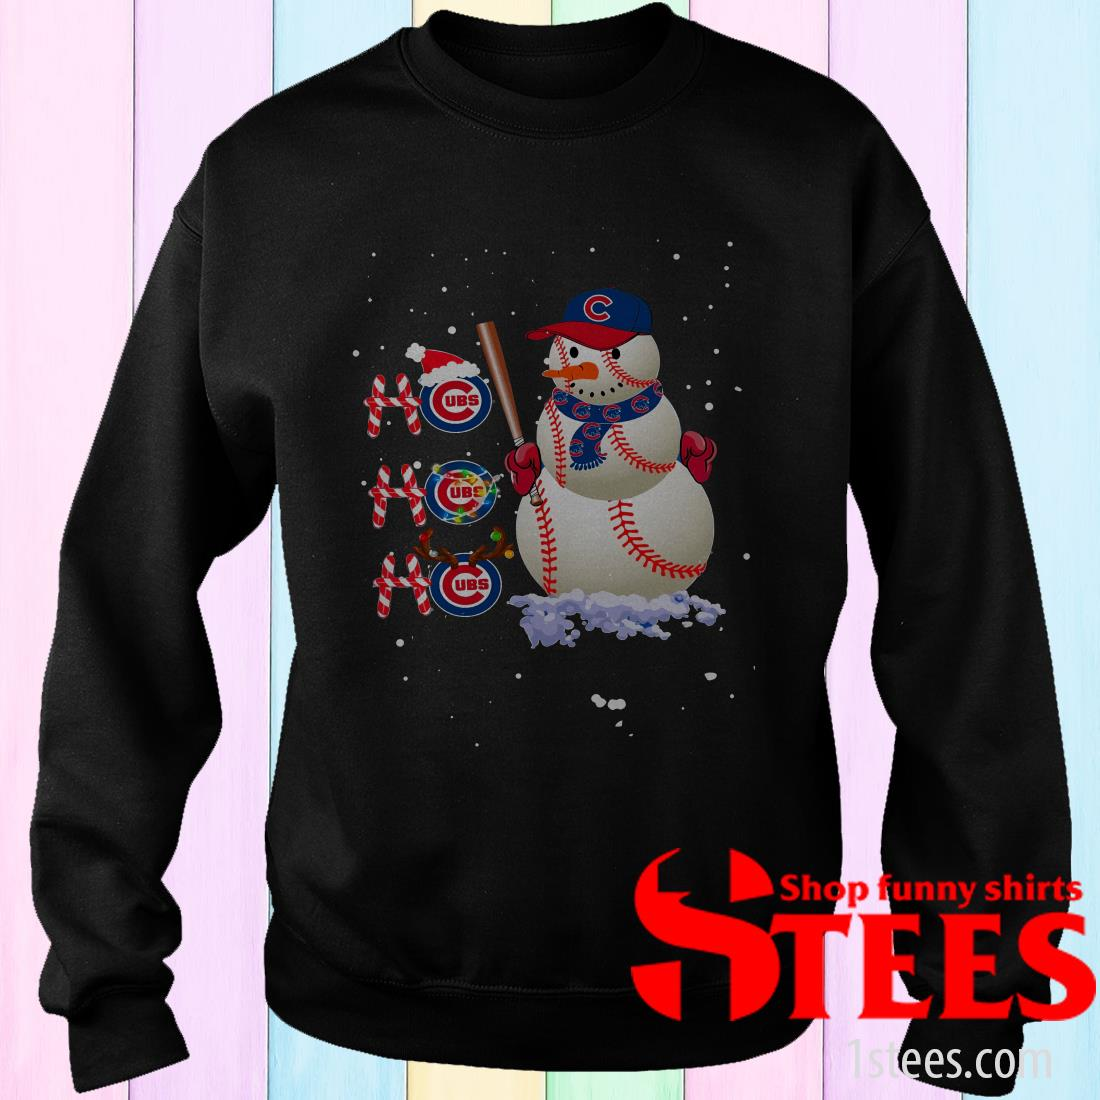 Ho Ho Ho Chicago Cubs Christmas Sweatshirt